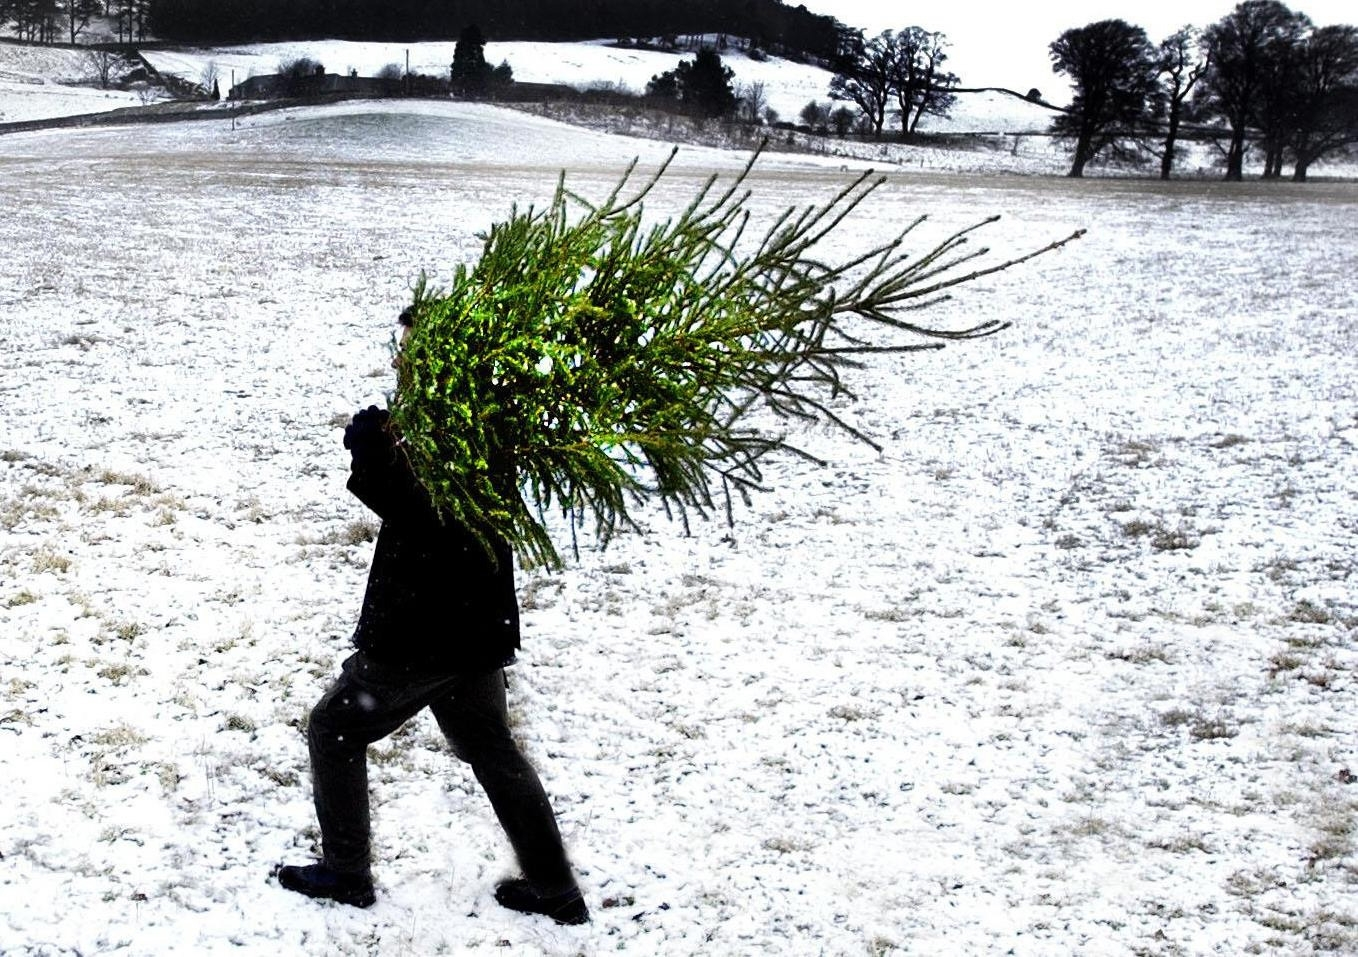 HARD WORK: Hopefully you won't have to carry your tree through the snow like this chap Picture: PA